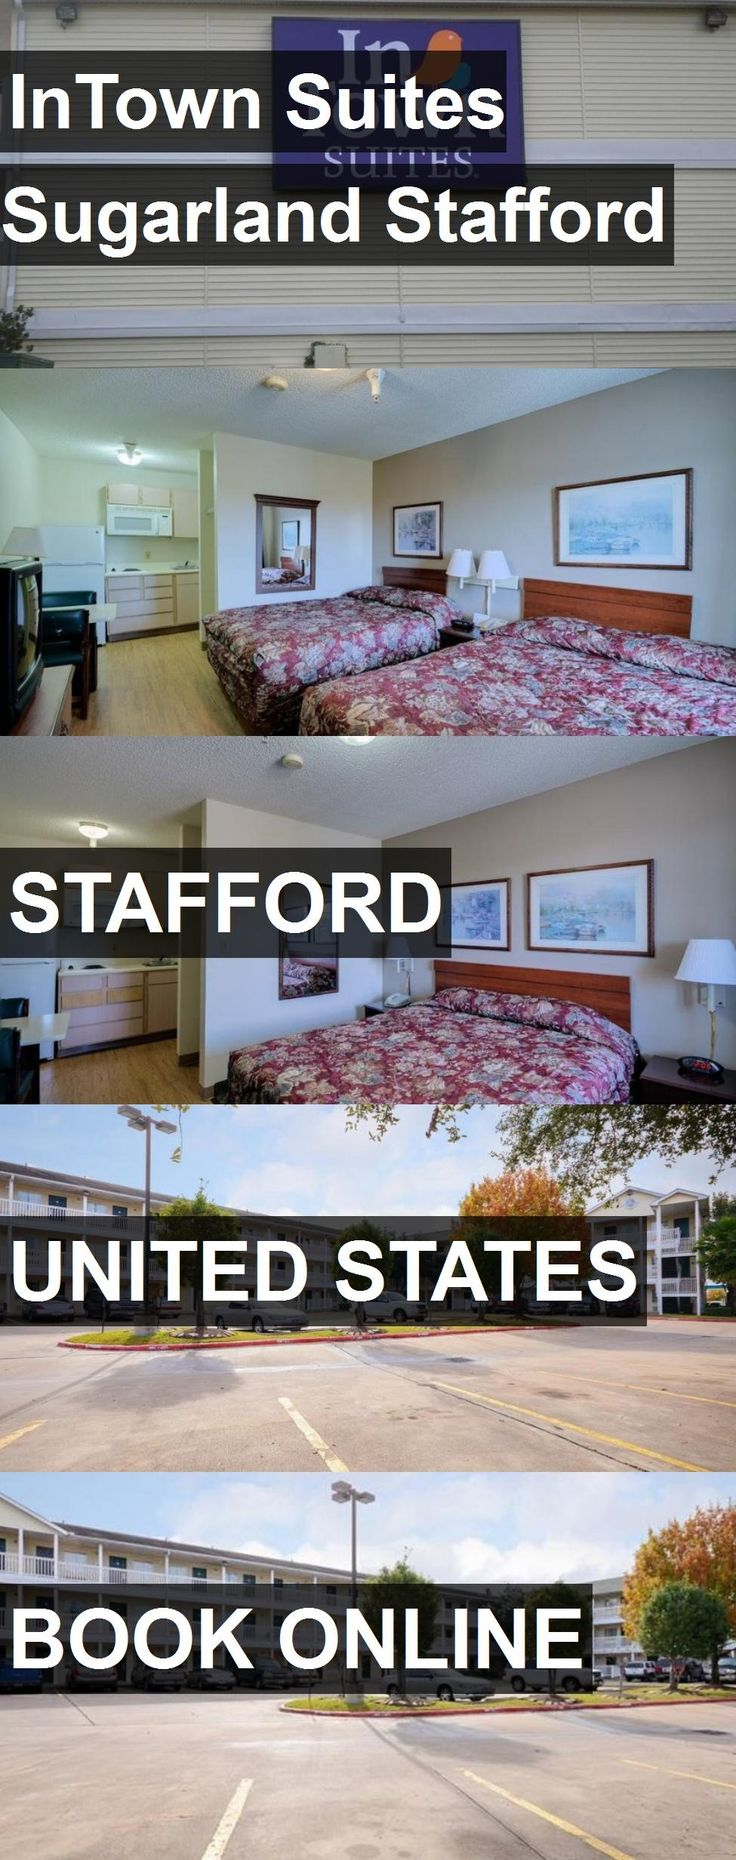 Hotel InTown Suites Sugarland Stafford in Stafford, United States. For more information, photos, reviews and best prices please follow the link. #UnitedStates #Stafford #InTownSuitesSugarlandStafford #hotel #travel #vacation